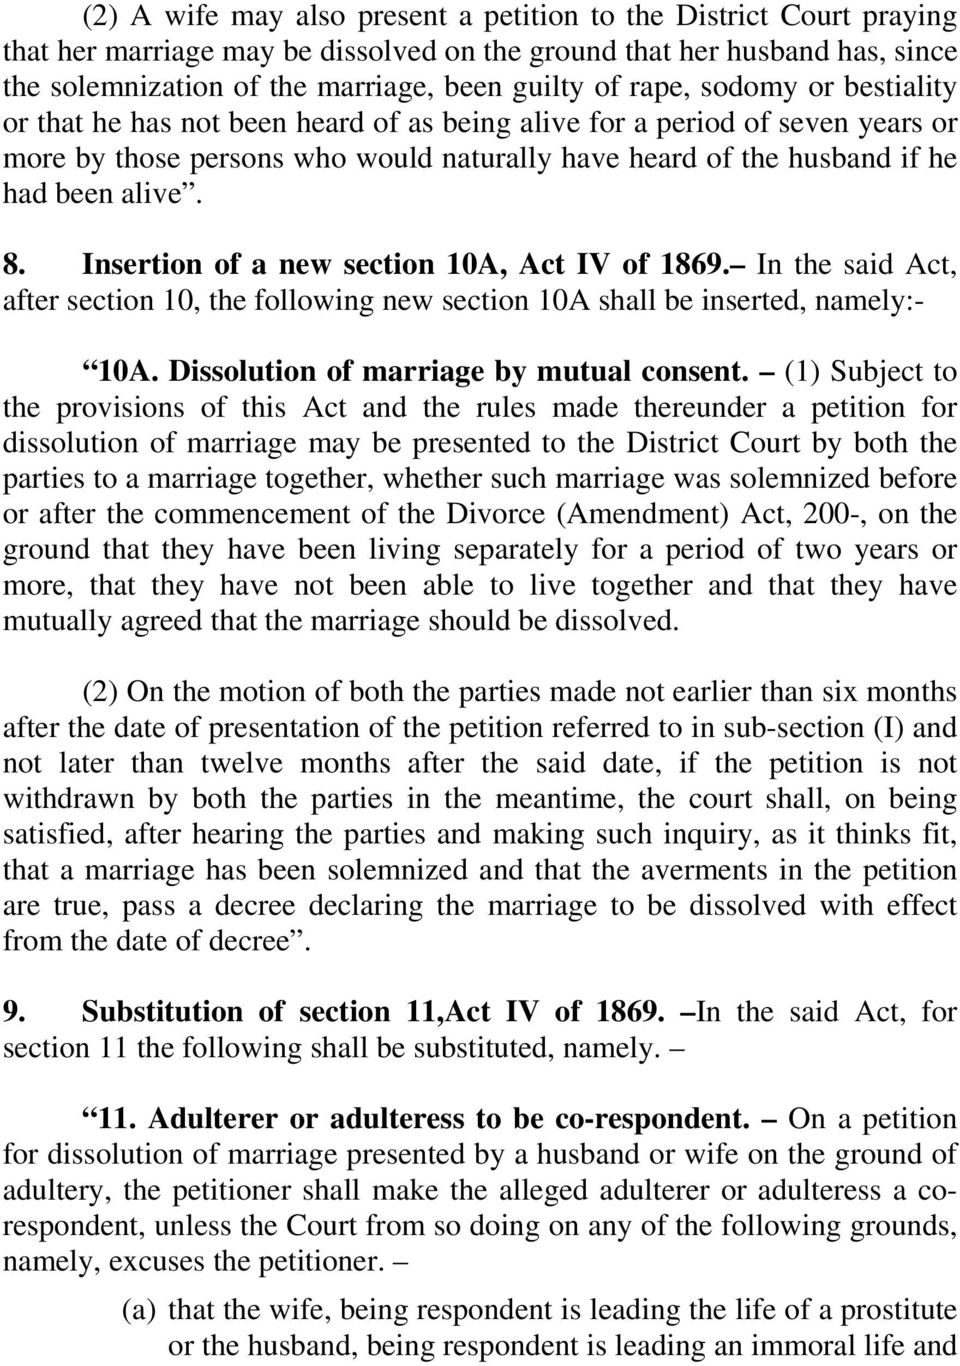 Insertion of a new section 10A, Act IV of 1869. In the said Act, after section 10, the following new section 10A shall be inserted, namely:- 10A. Dissolution of marriage by mutual consent.